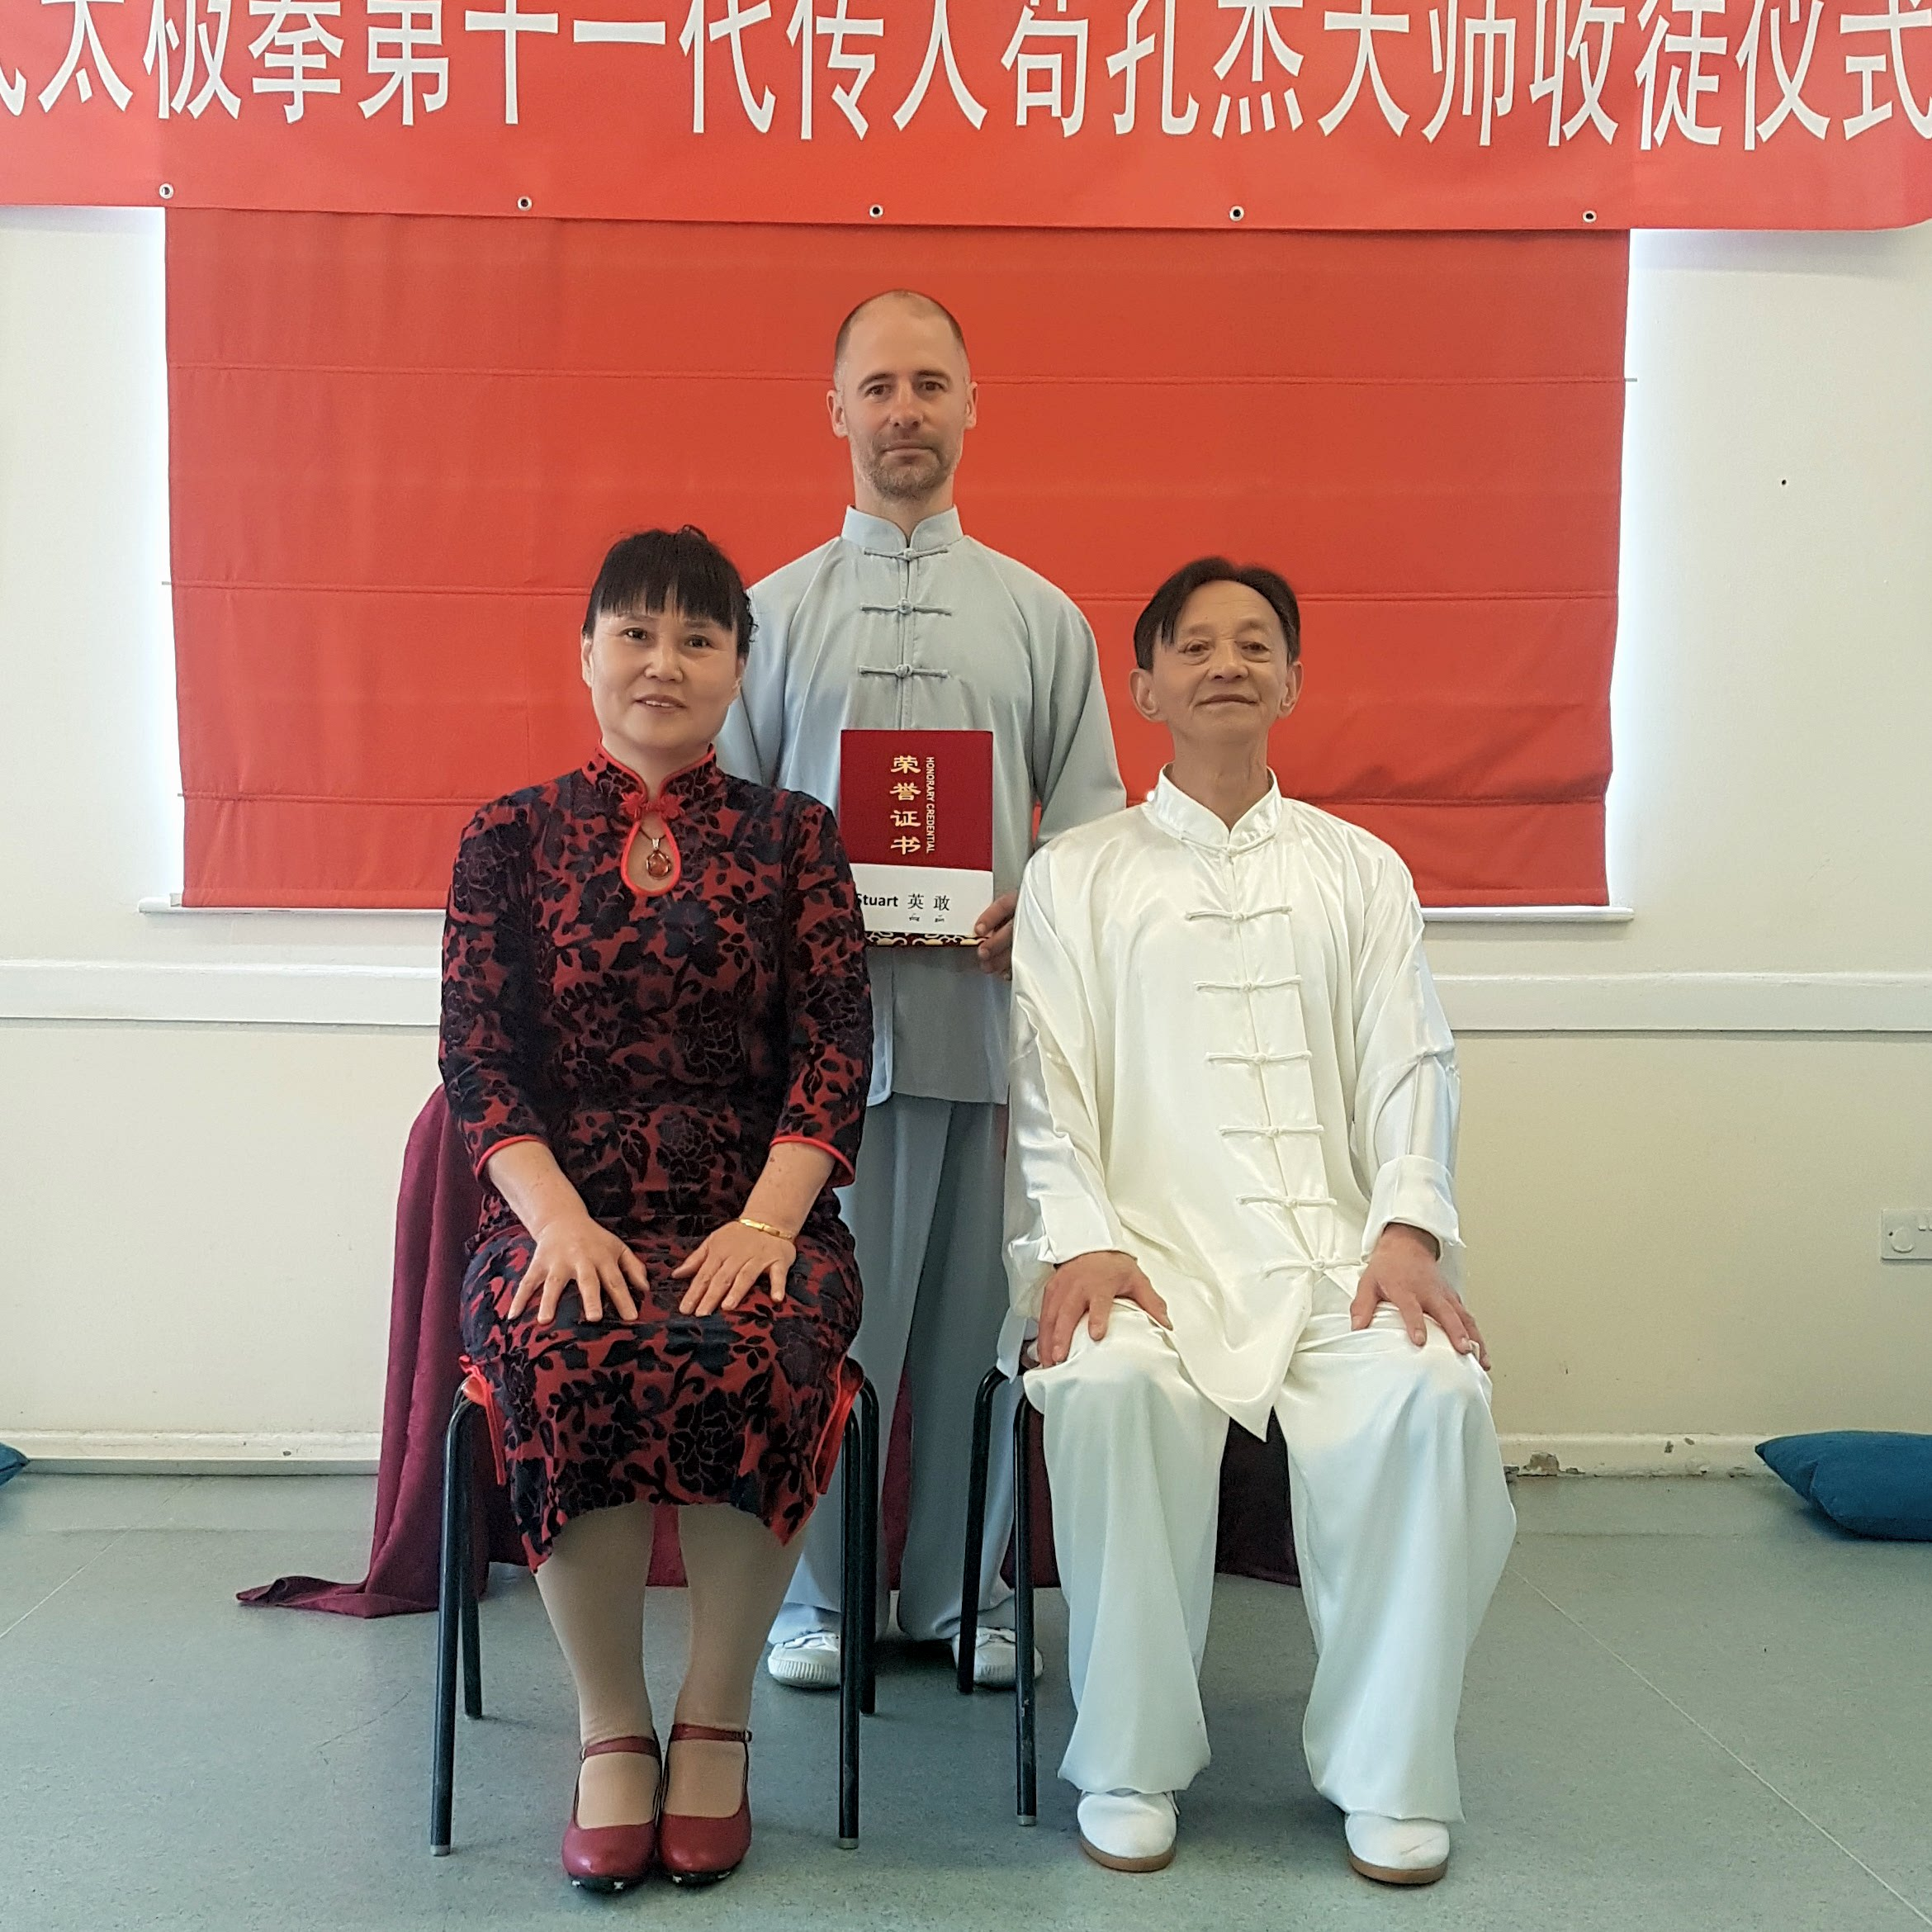 Me, pictured with Gou Kong Jie and his wife at my bai shi ceromany in March 2017